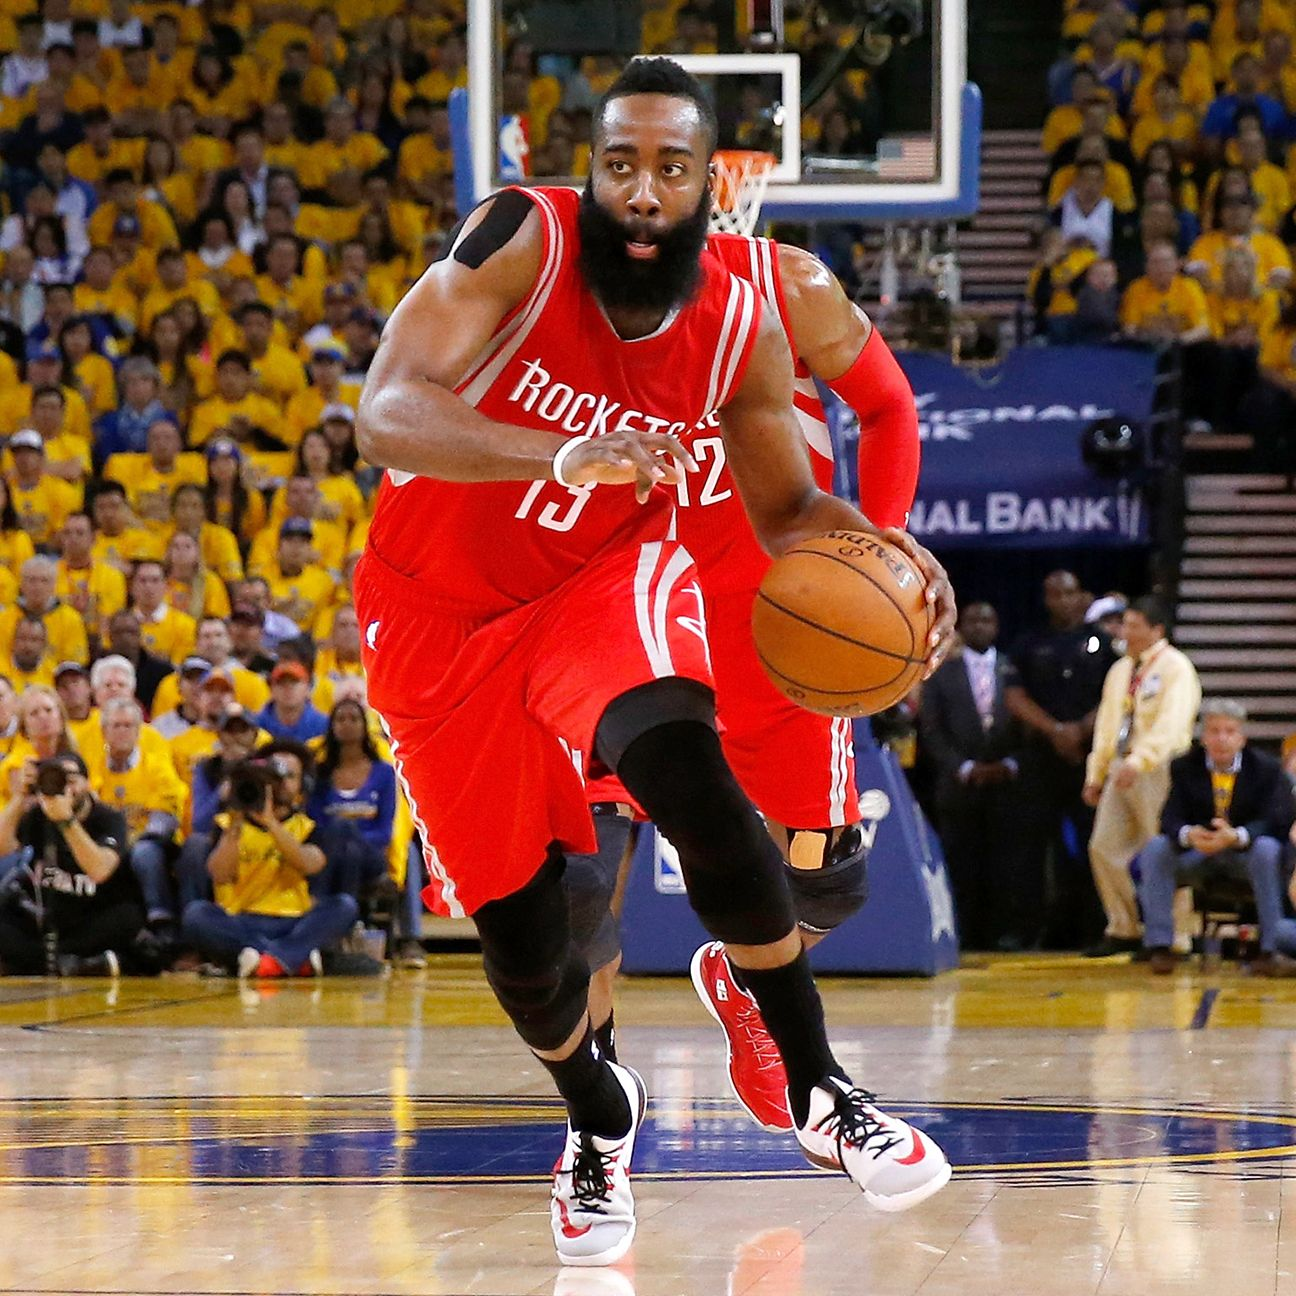 Houston Rockets Where To Watch The Upcoming Match Espn: Nothing Cooking For James Harden With Houston Rockets